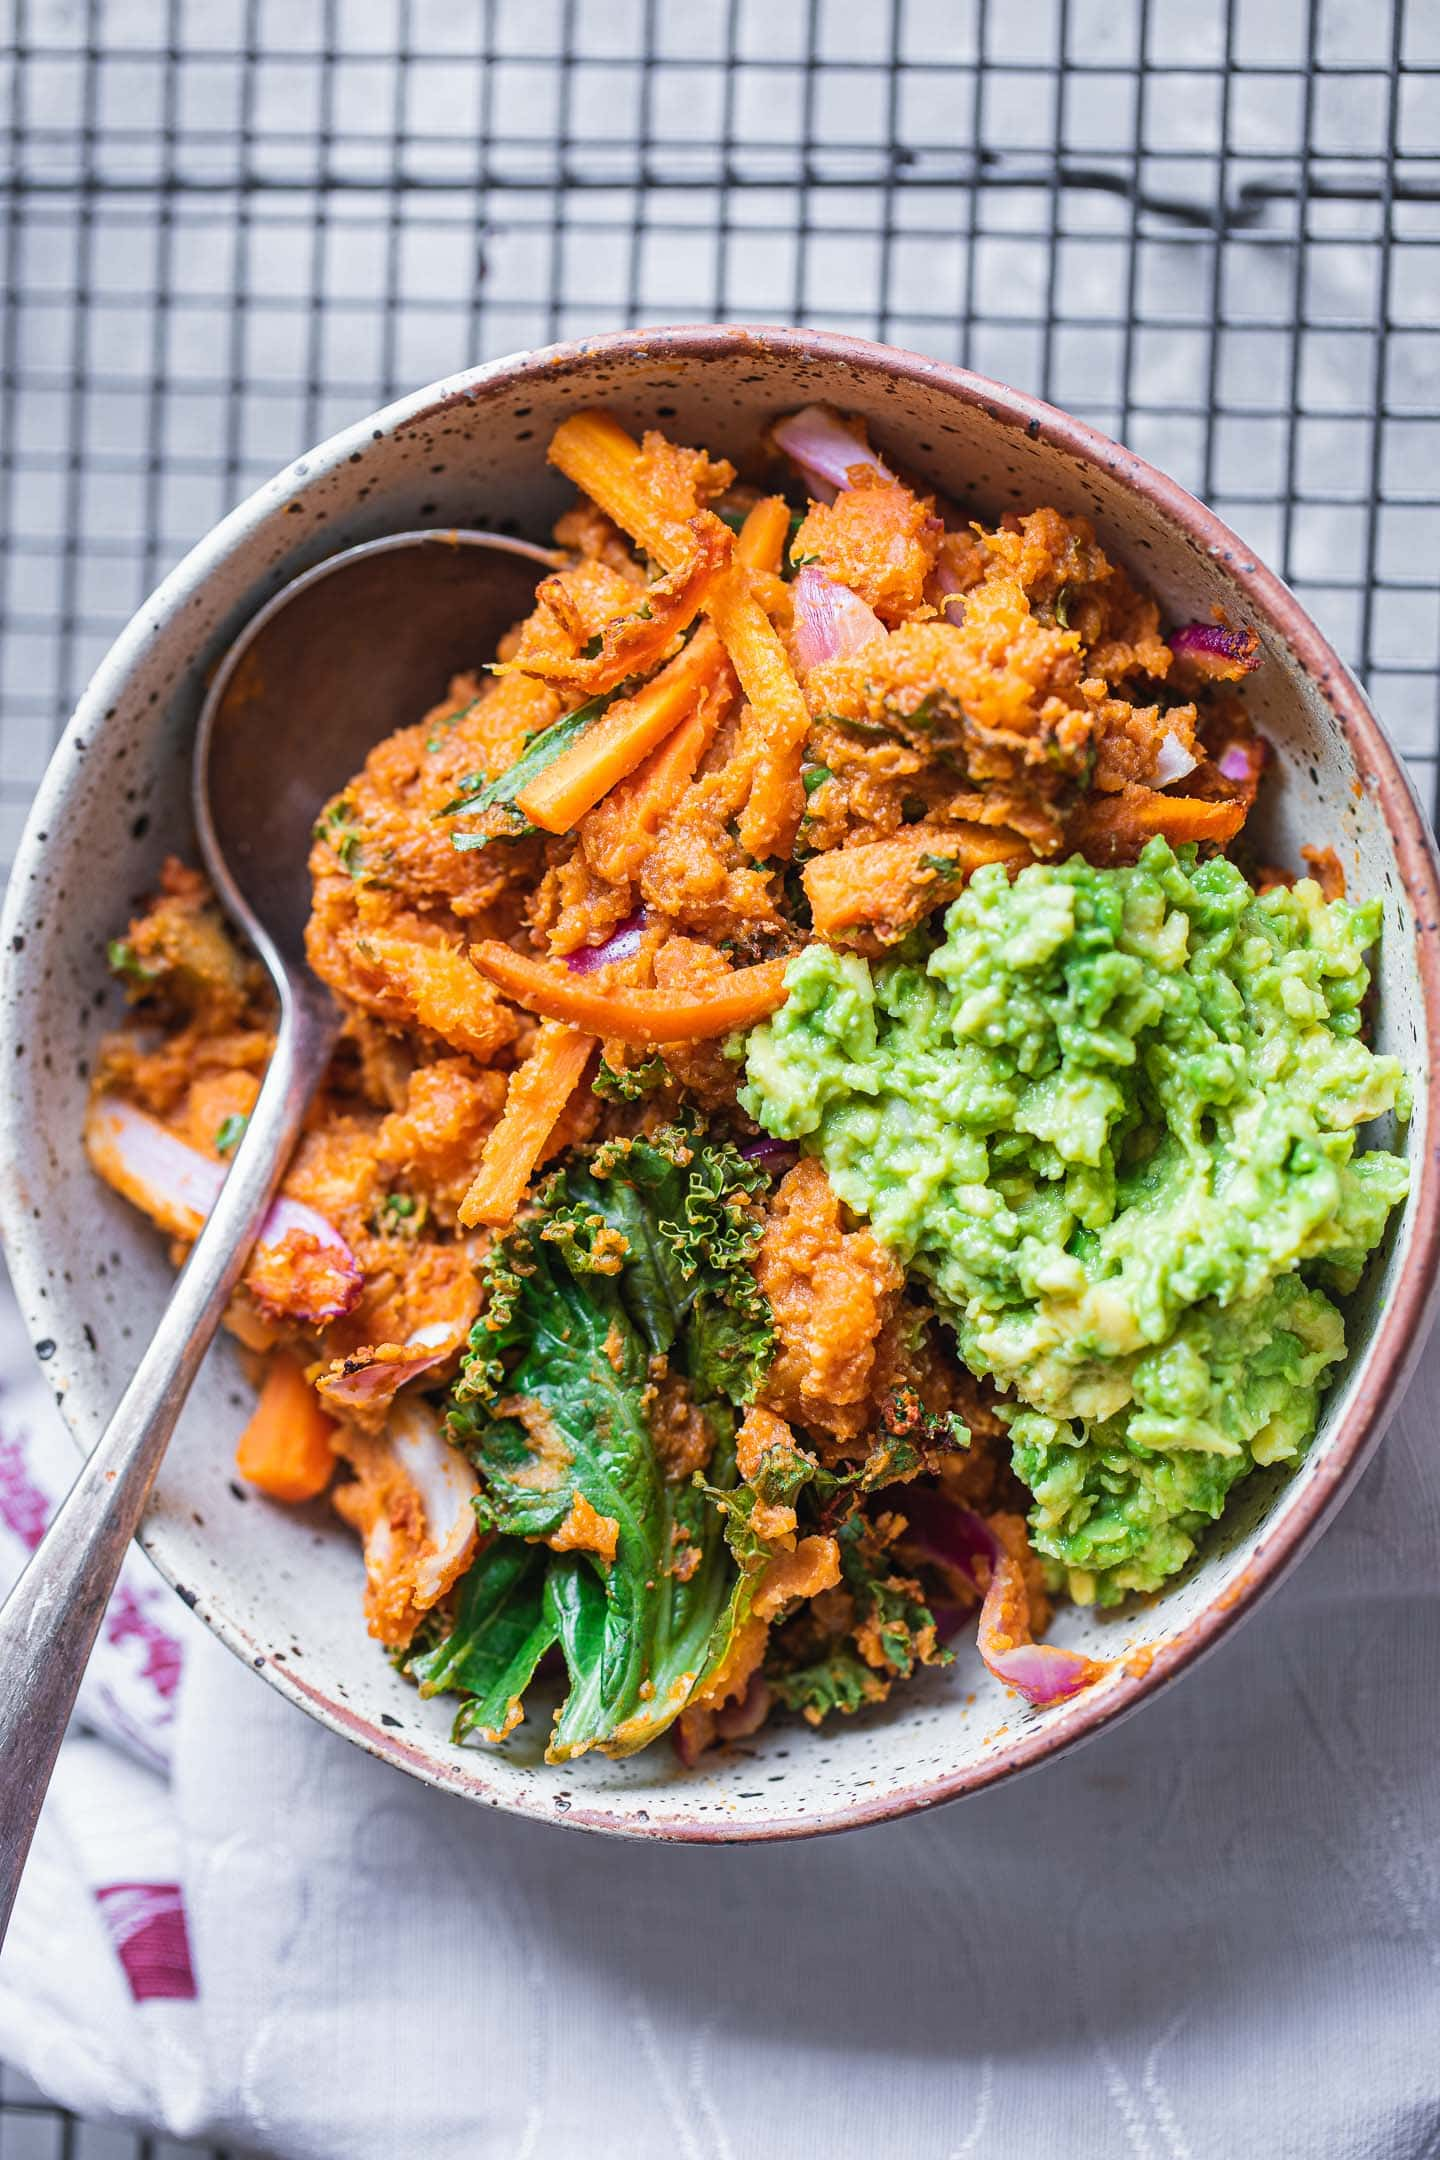 Bowl of a sweet potato casserole with kale and red onion